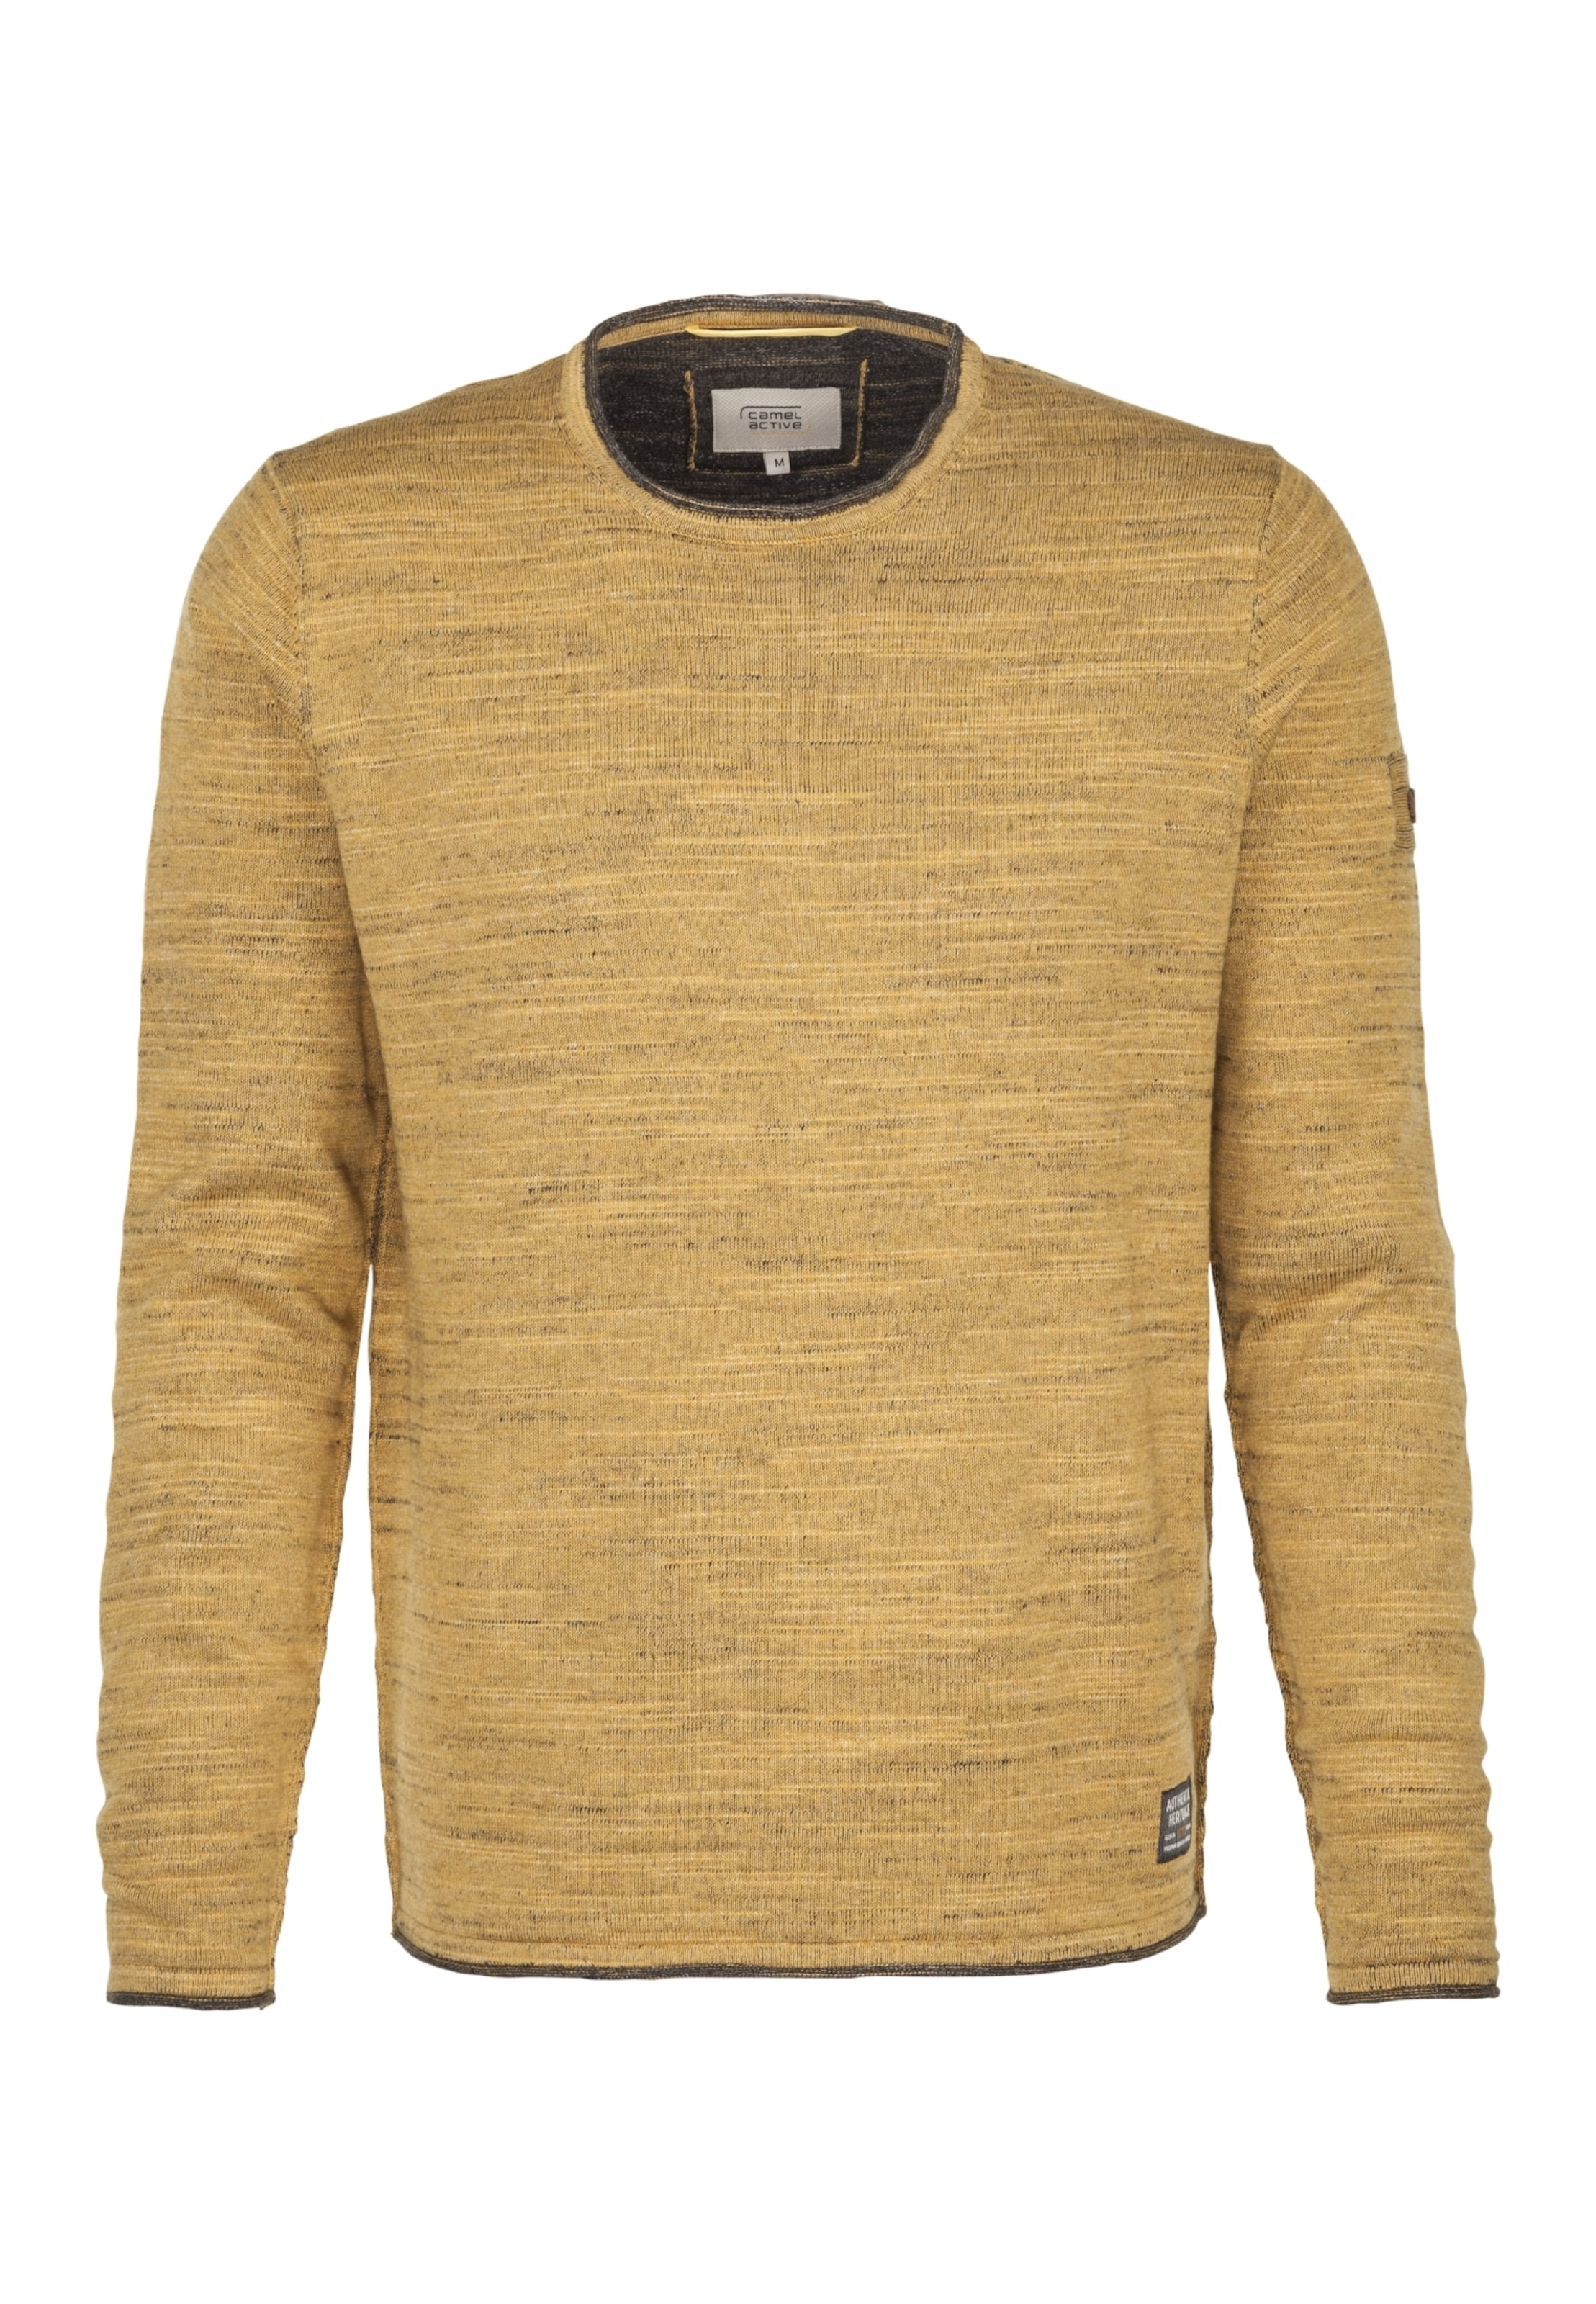 In Pullover Camel Safran Active Camel Active 0w8Nmvn